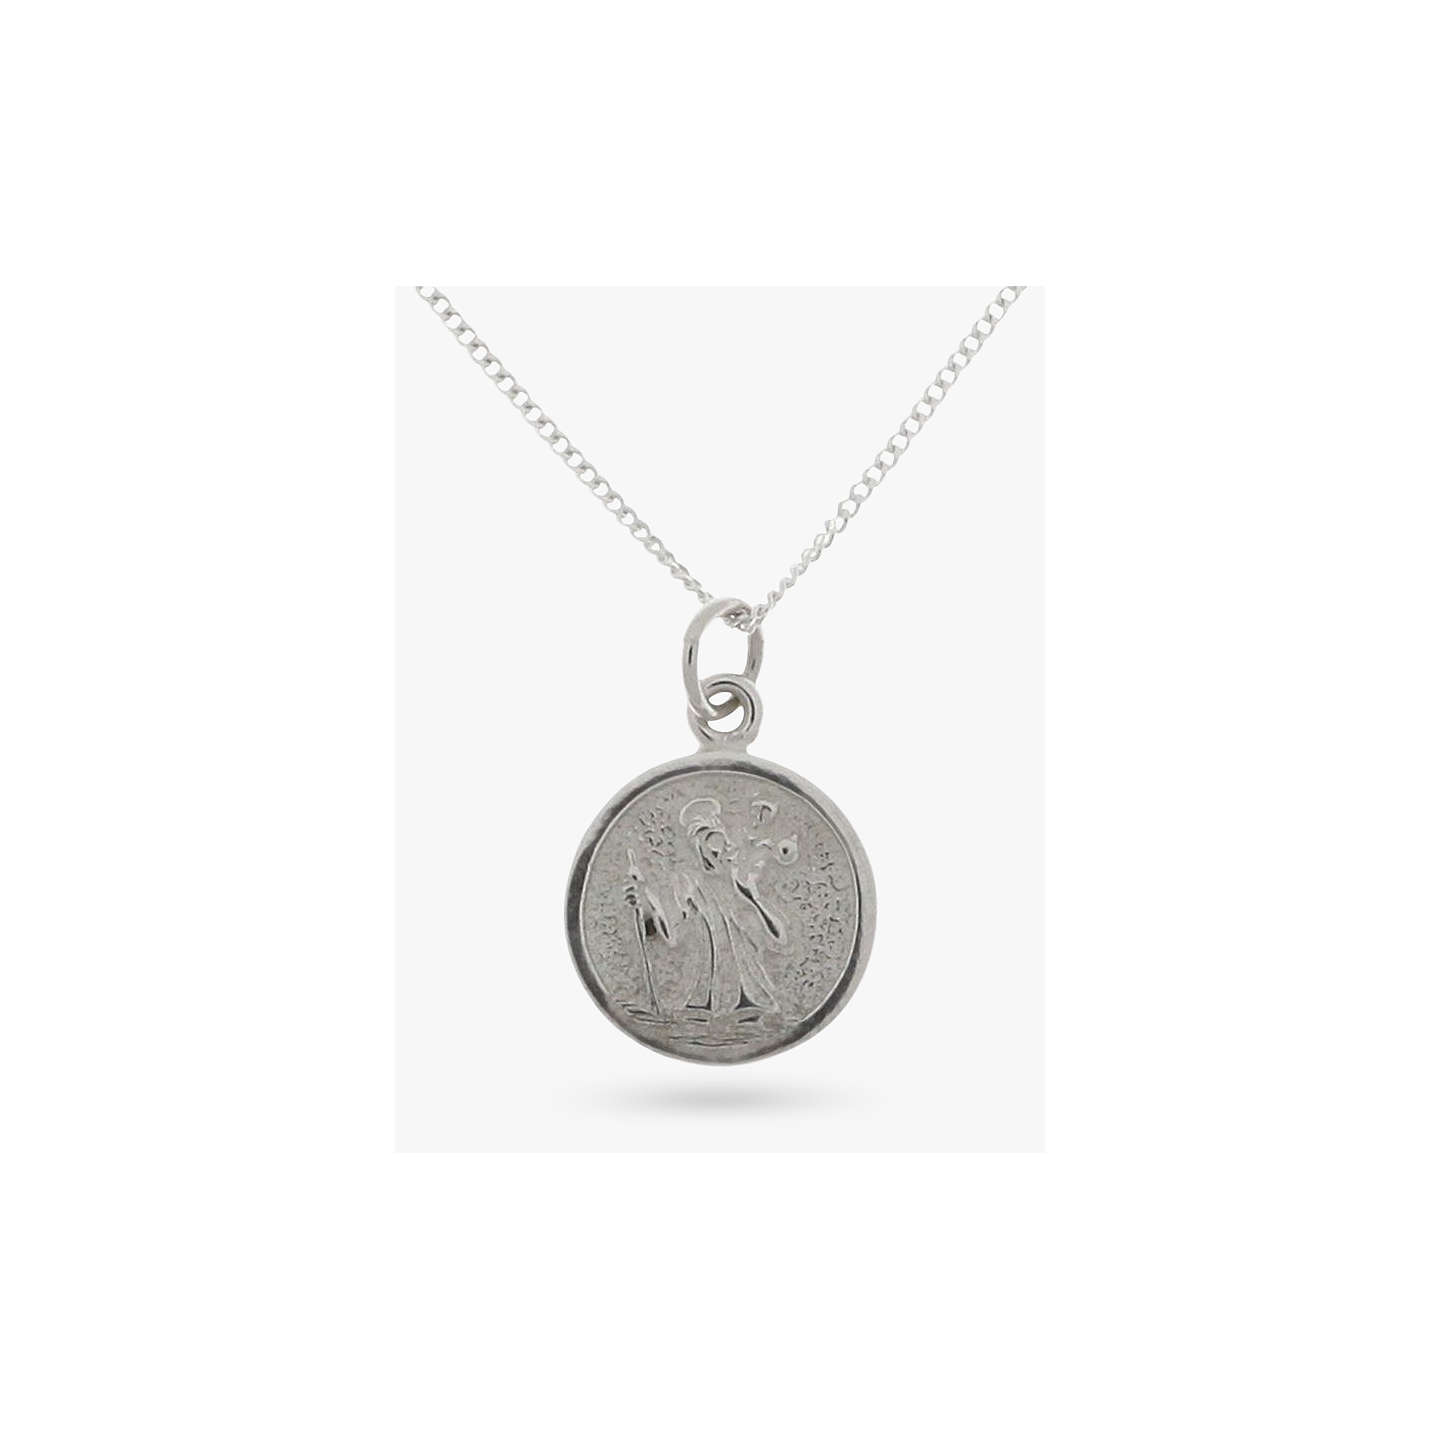 Nina b sterling silver stristopher pendant at john lewis buynina b sterling silver stristopher pendant online at johnlewis mozeypictures Gallery